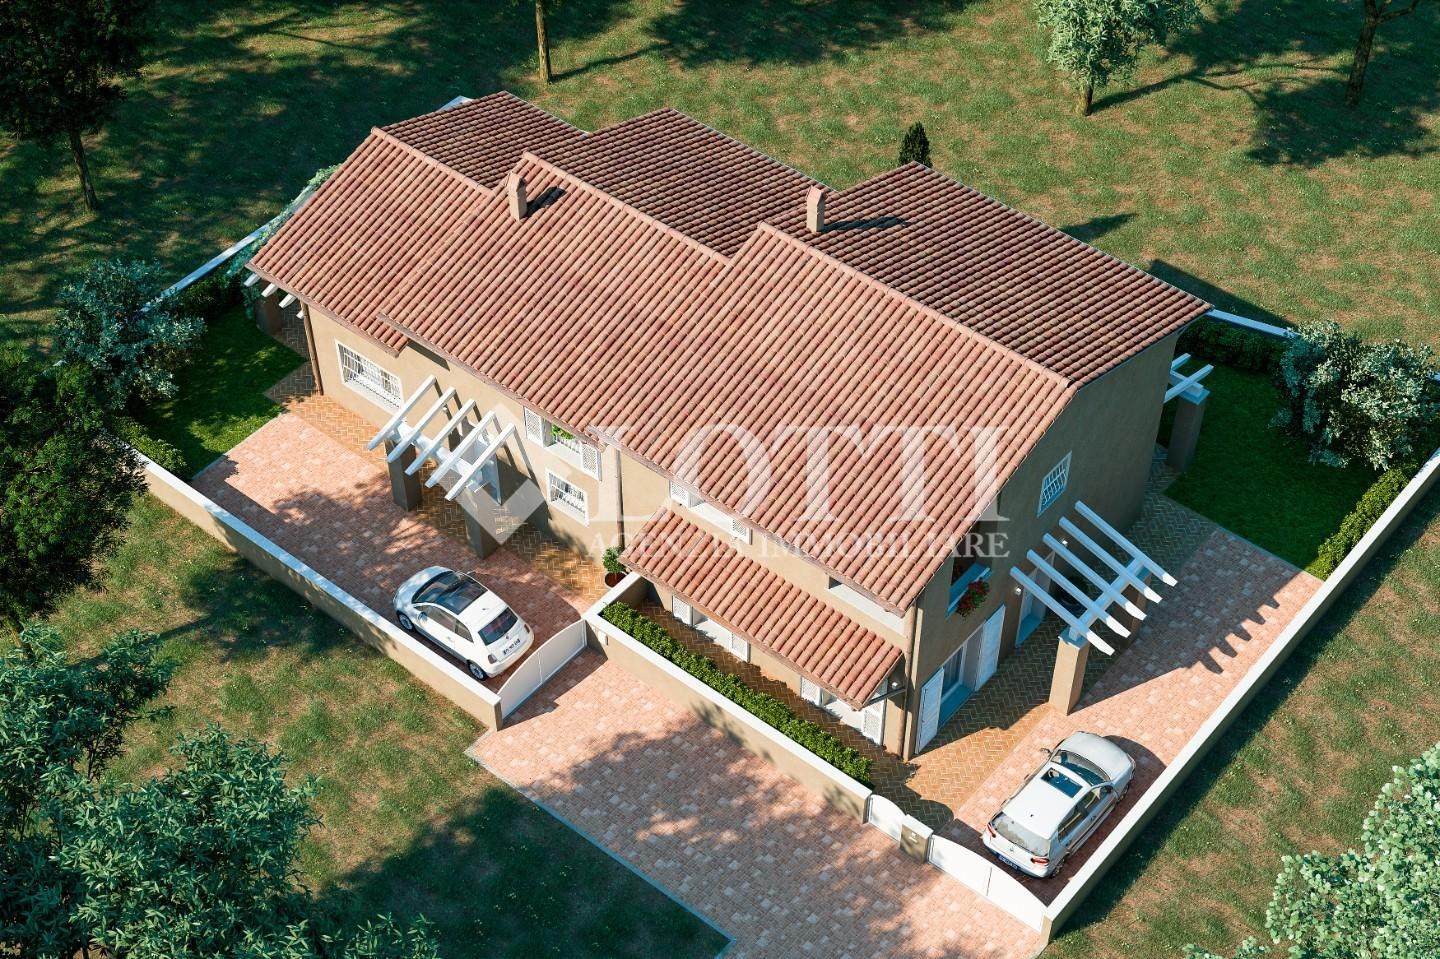 Semi-detached house for sale, ref. 634